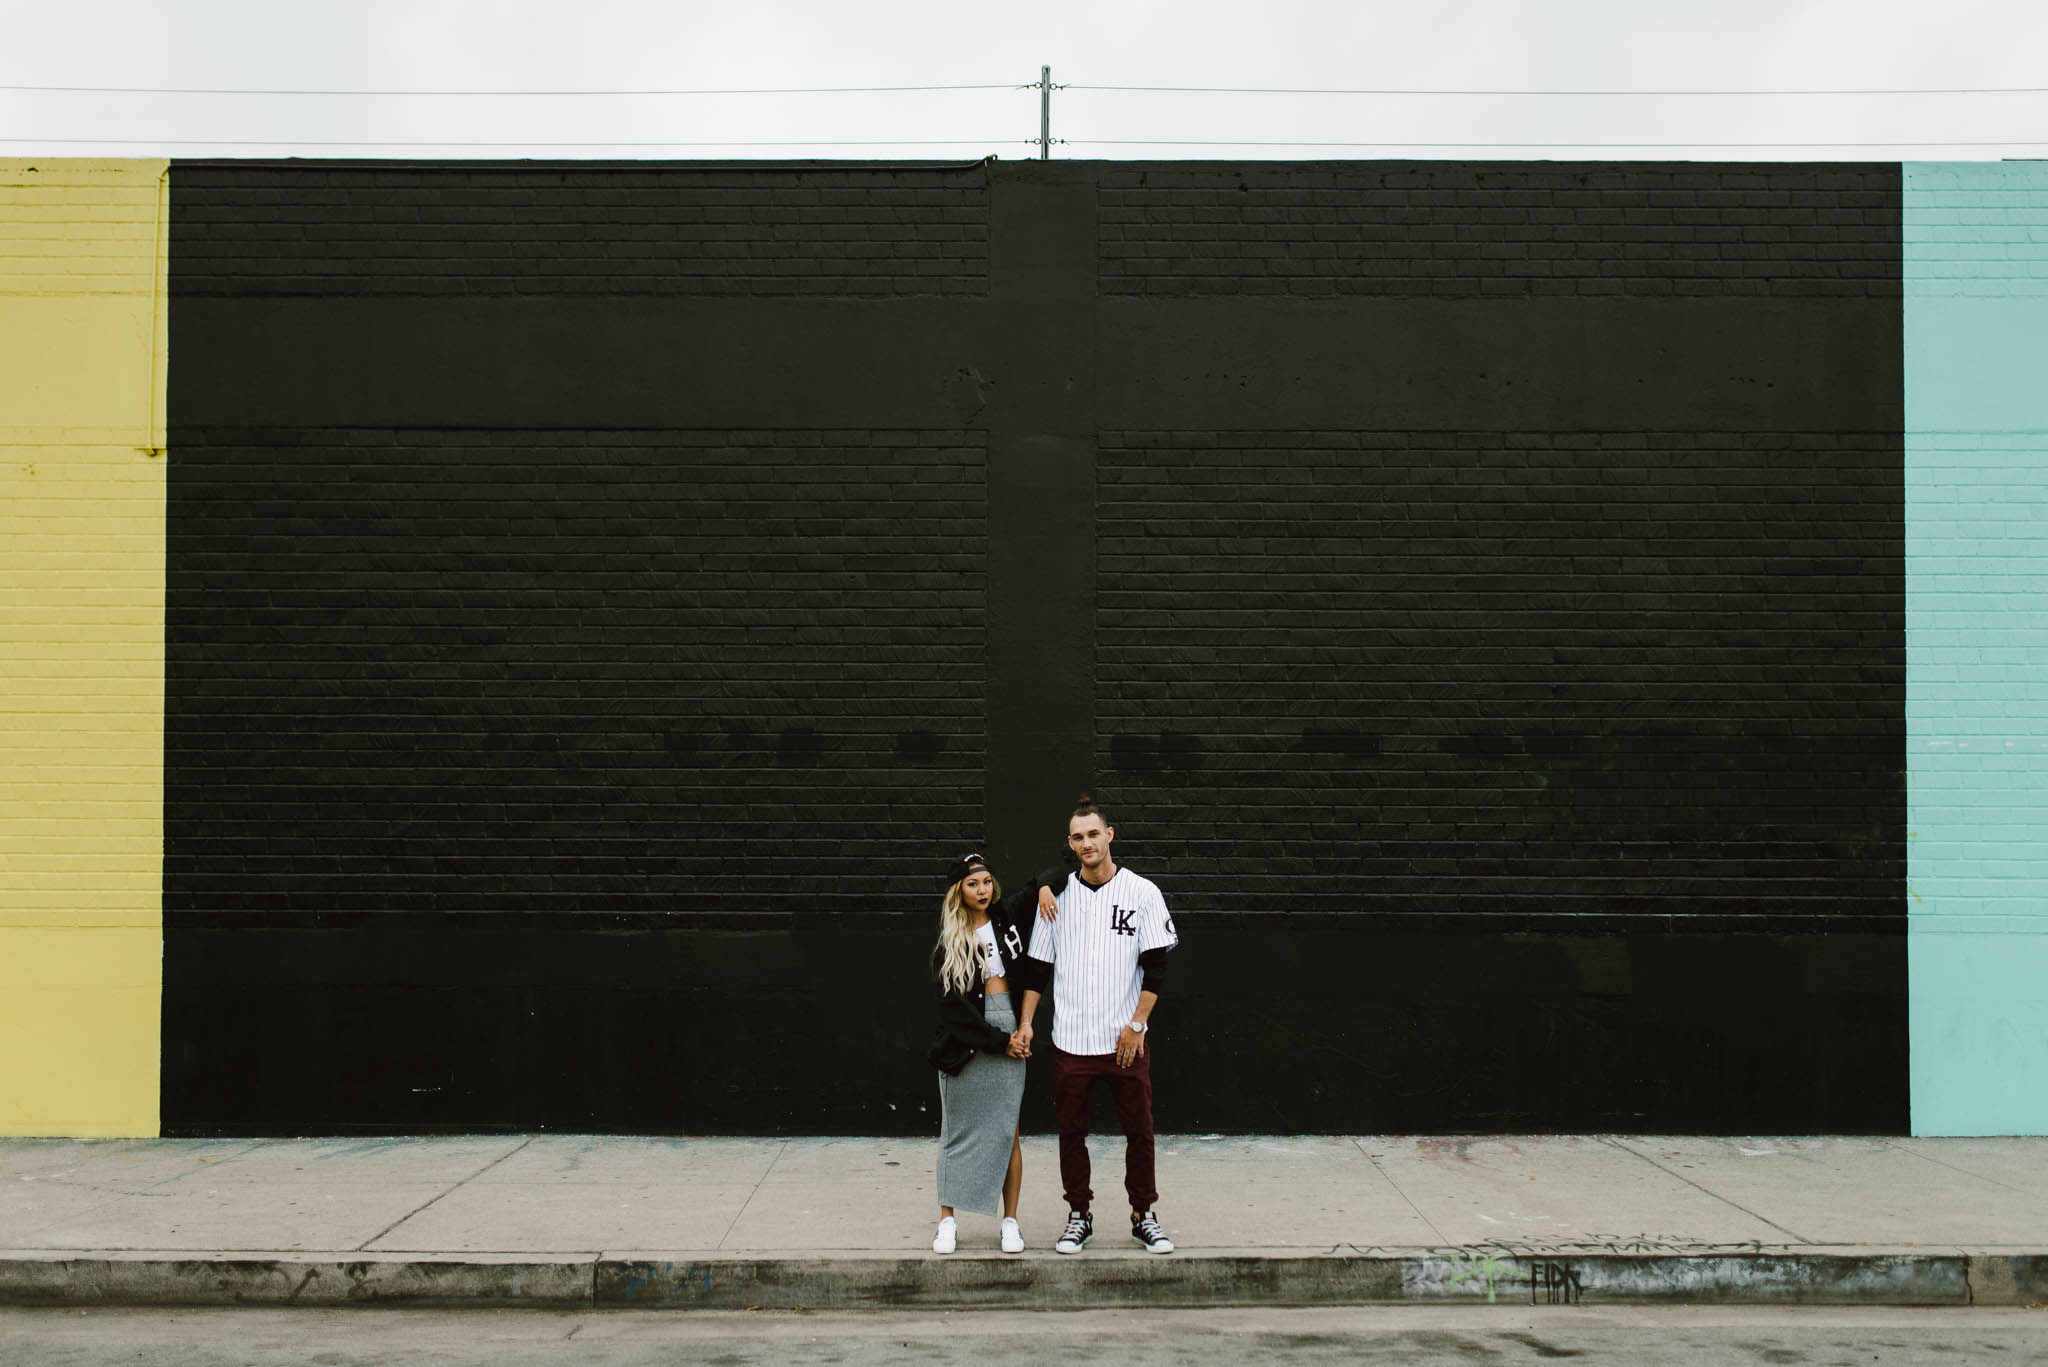 ©Isaiah-&-Taylor-Photography---Downtown-Los-Angeles-Skyline-Engagement-005.jpg